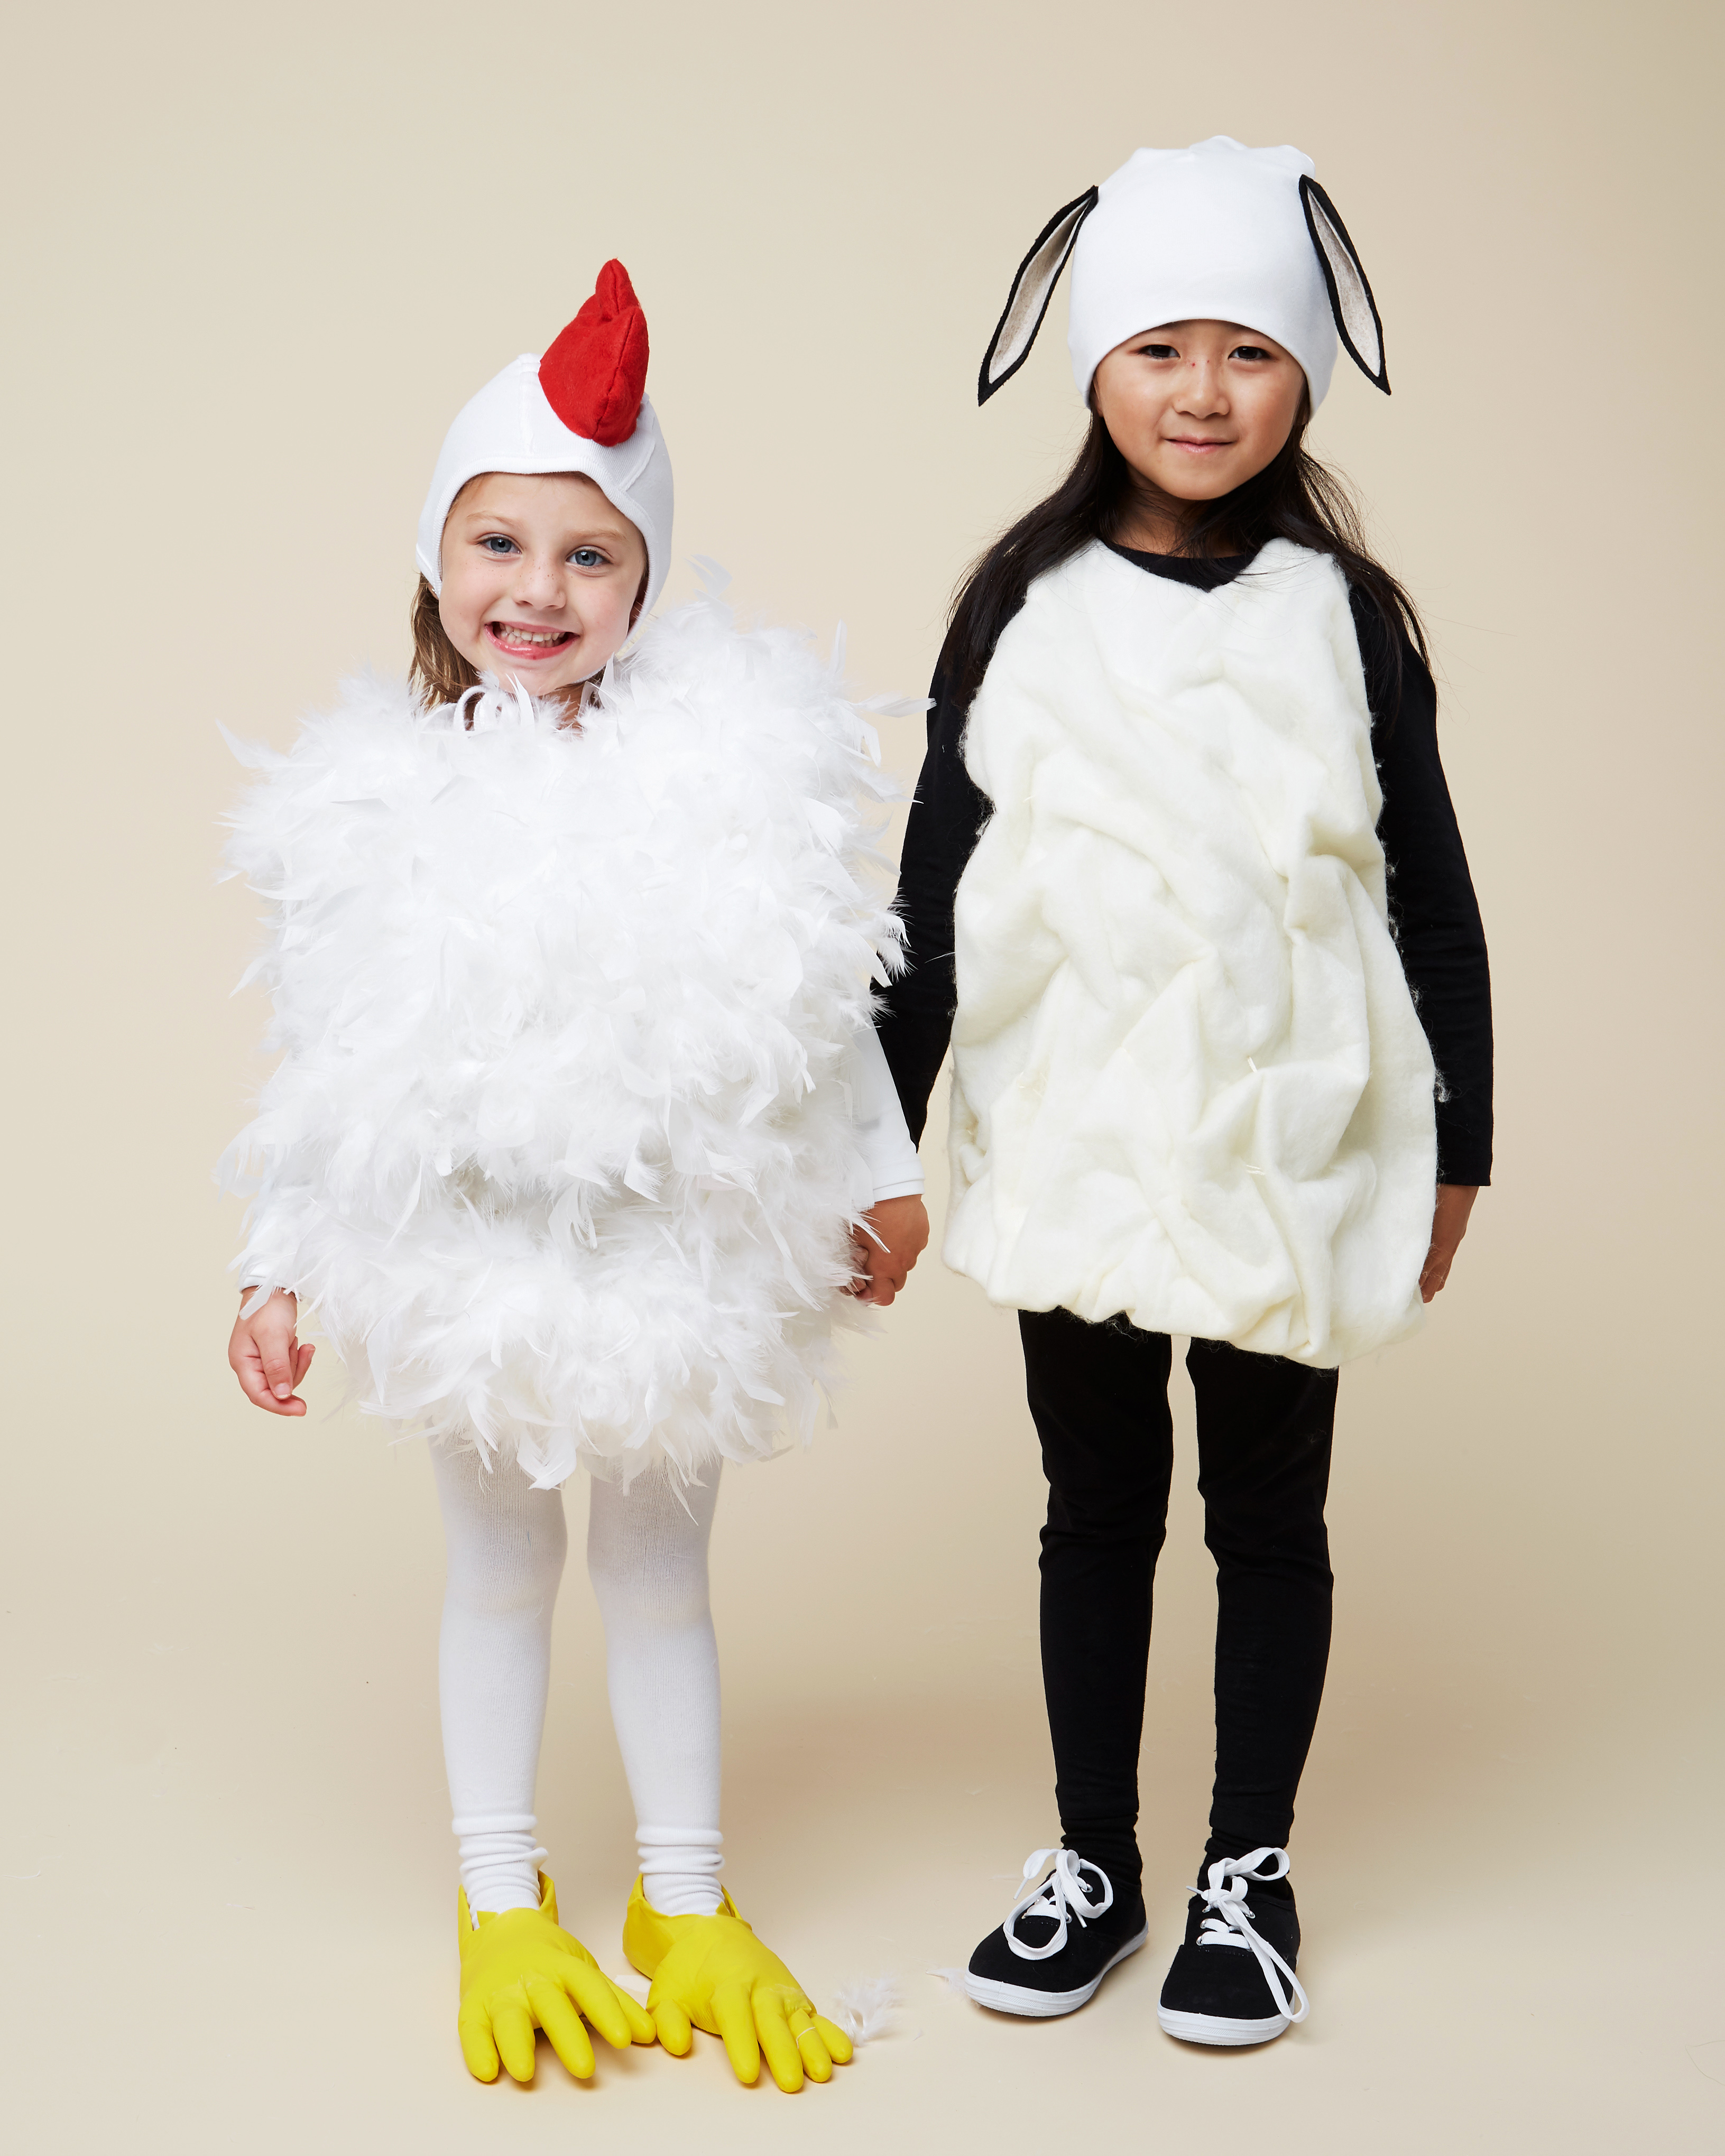 2 Farm Animal Costumes That Pair Perfectly for Best Friends